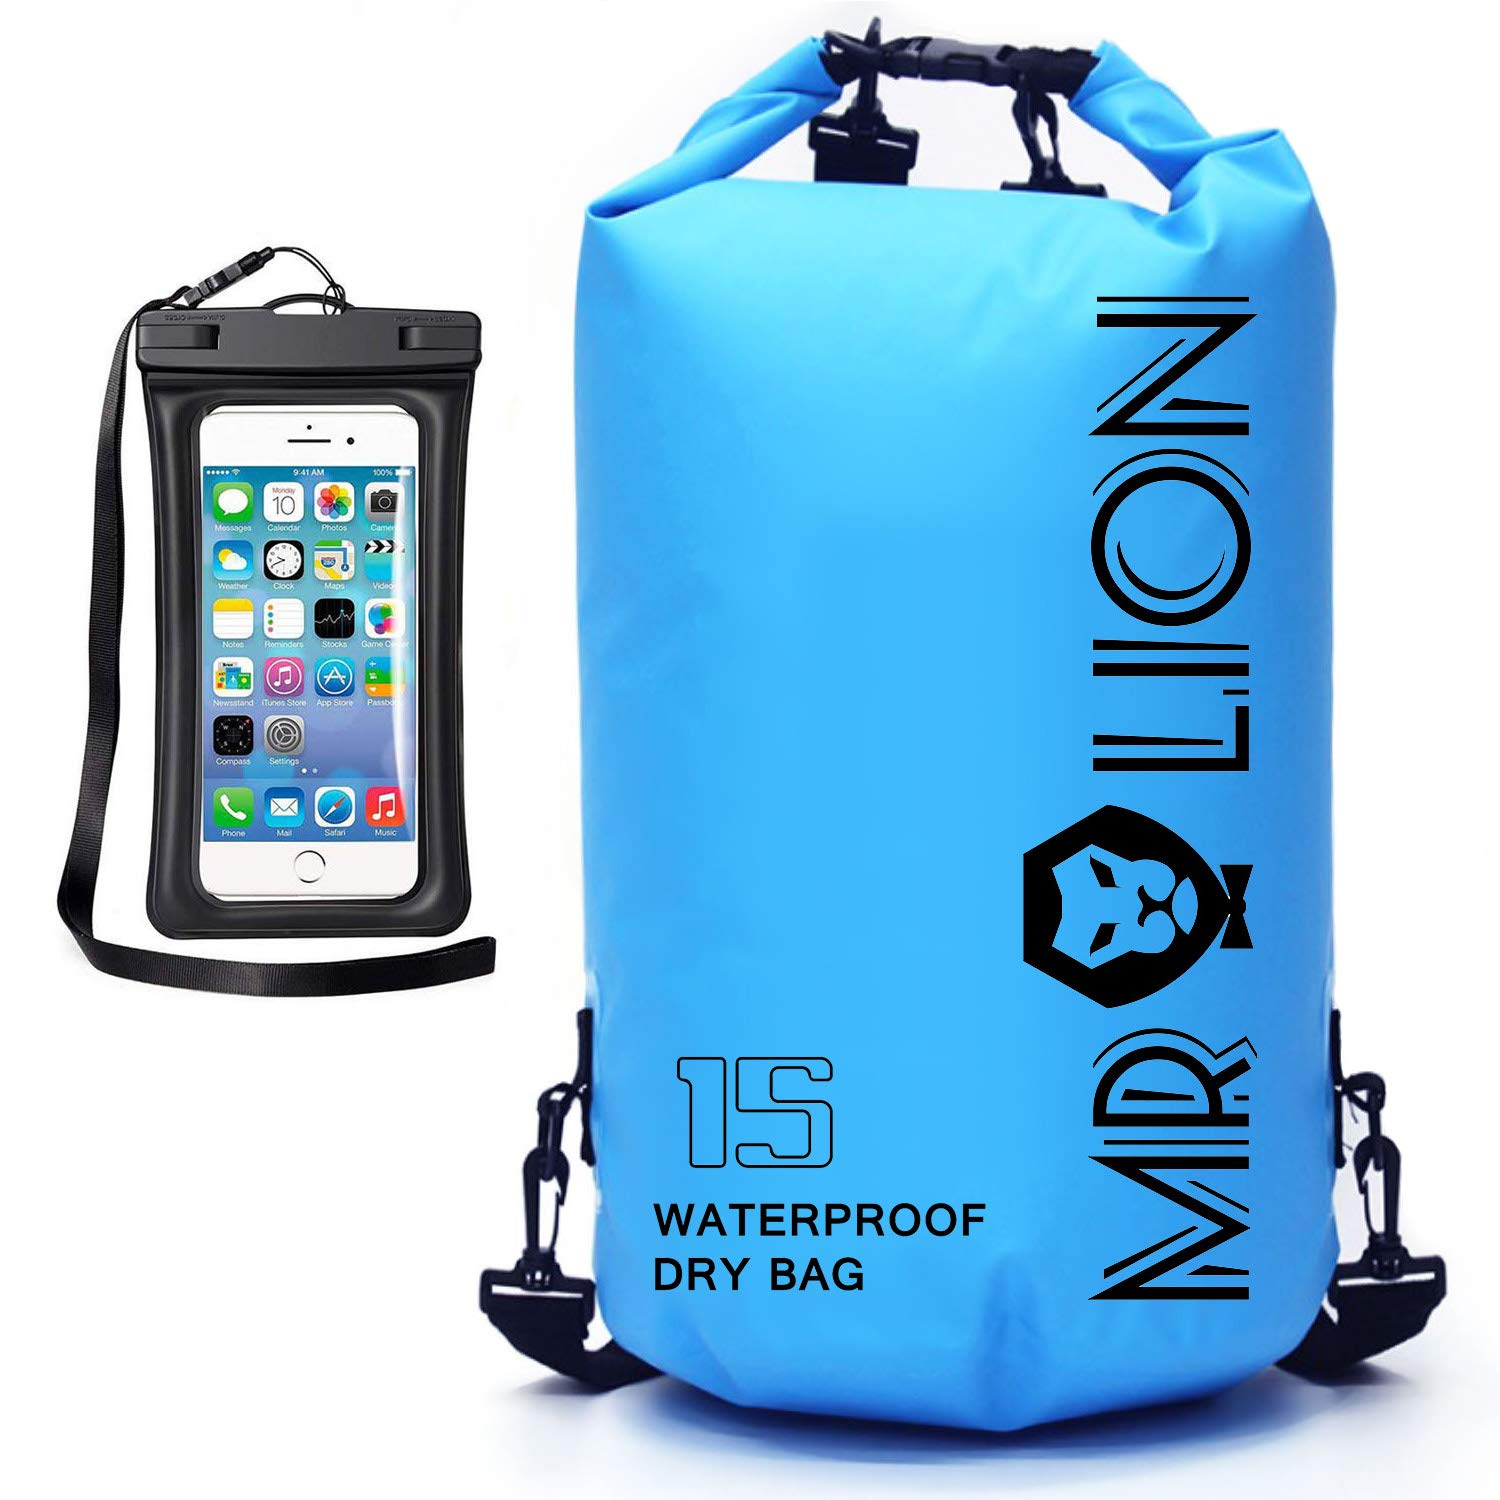 MR LION Waterproof Dry Bag - Roll Top Dry Compression Sack Keeps Gear Dry for Kayaking, Beach, Rafting, Boating, Hiking, Camping, Swimming, Floating and Fishing with Waterproof Phone Case (Blue, 15L)